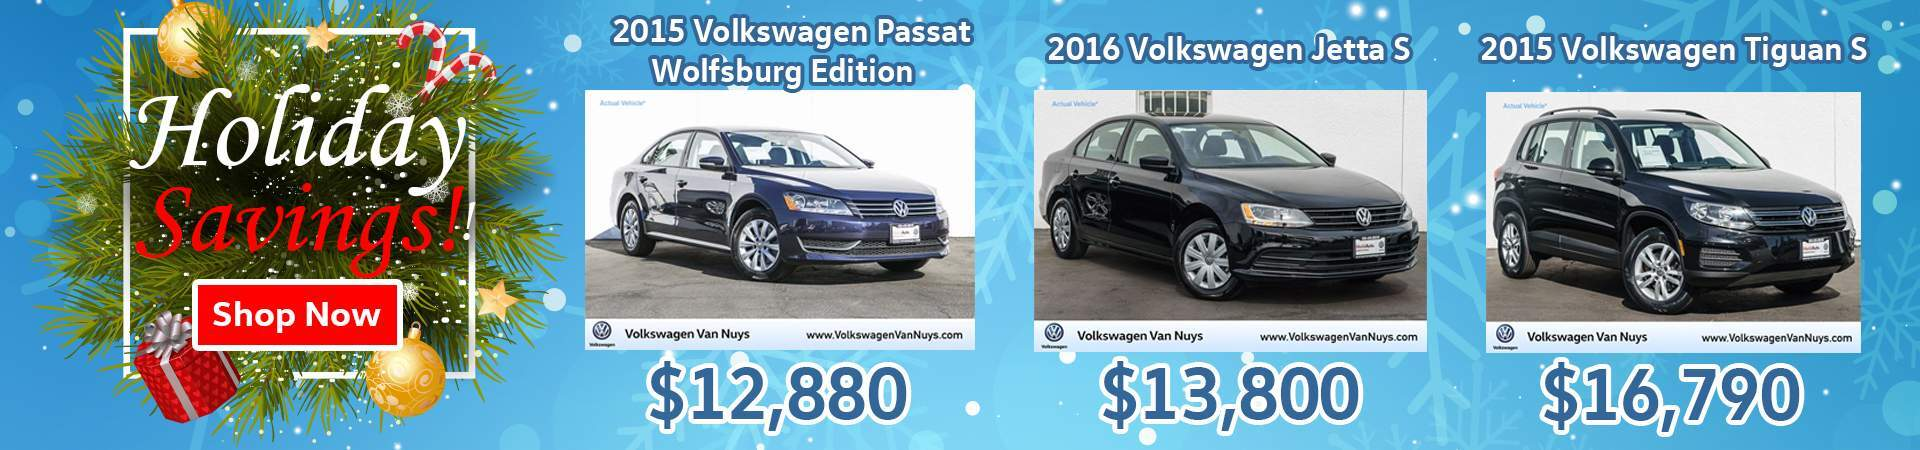 VW Holiday Savings